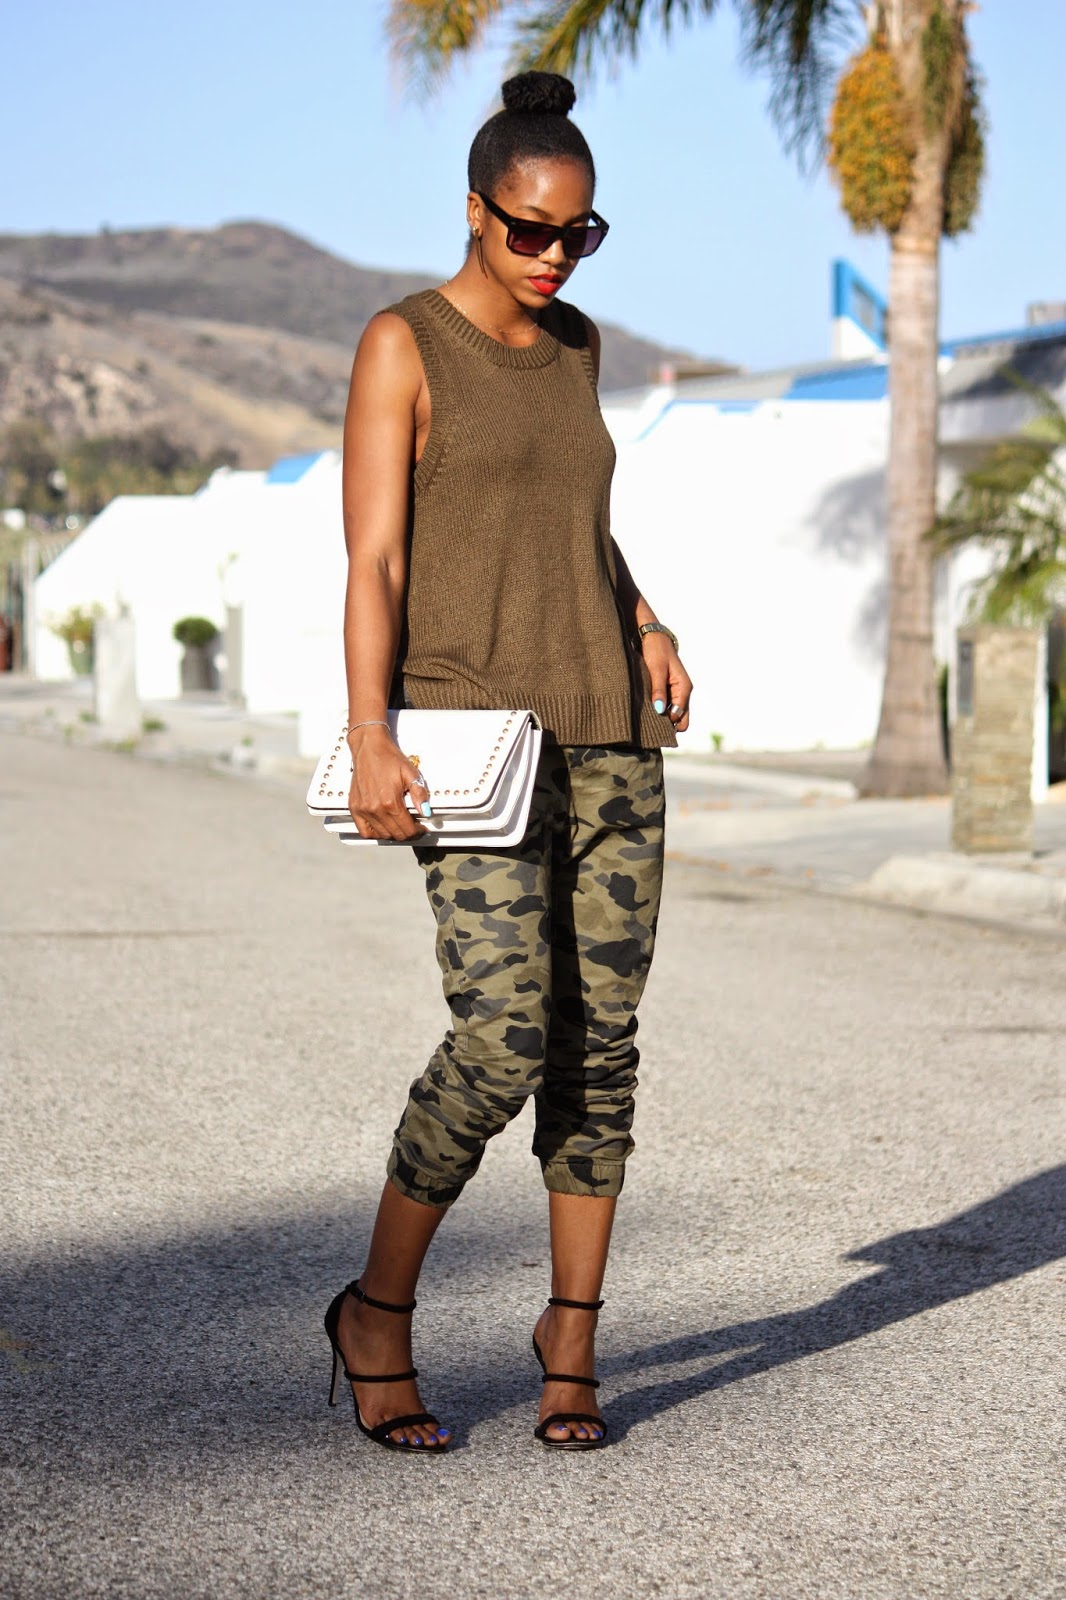 Wearing // H&M khaki knit vest, H&M mens camo pants & sunglasses, Forever 21 heels